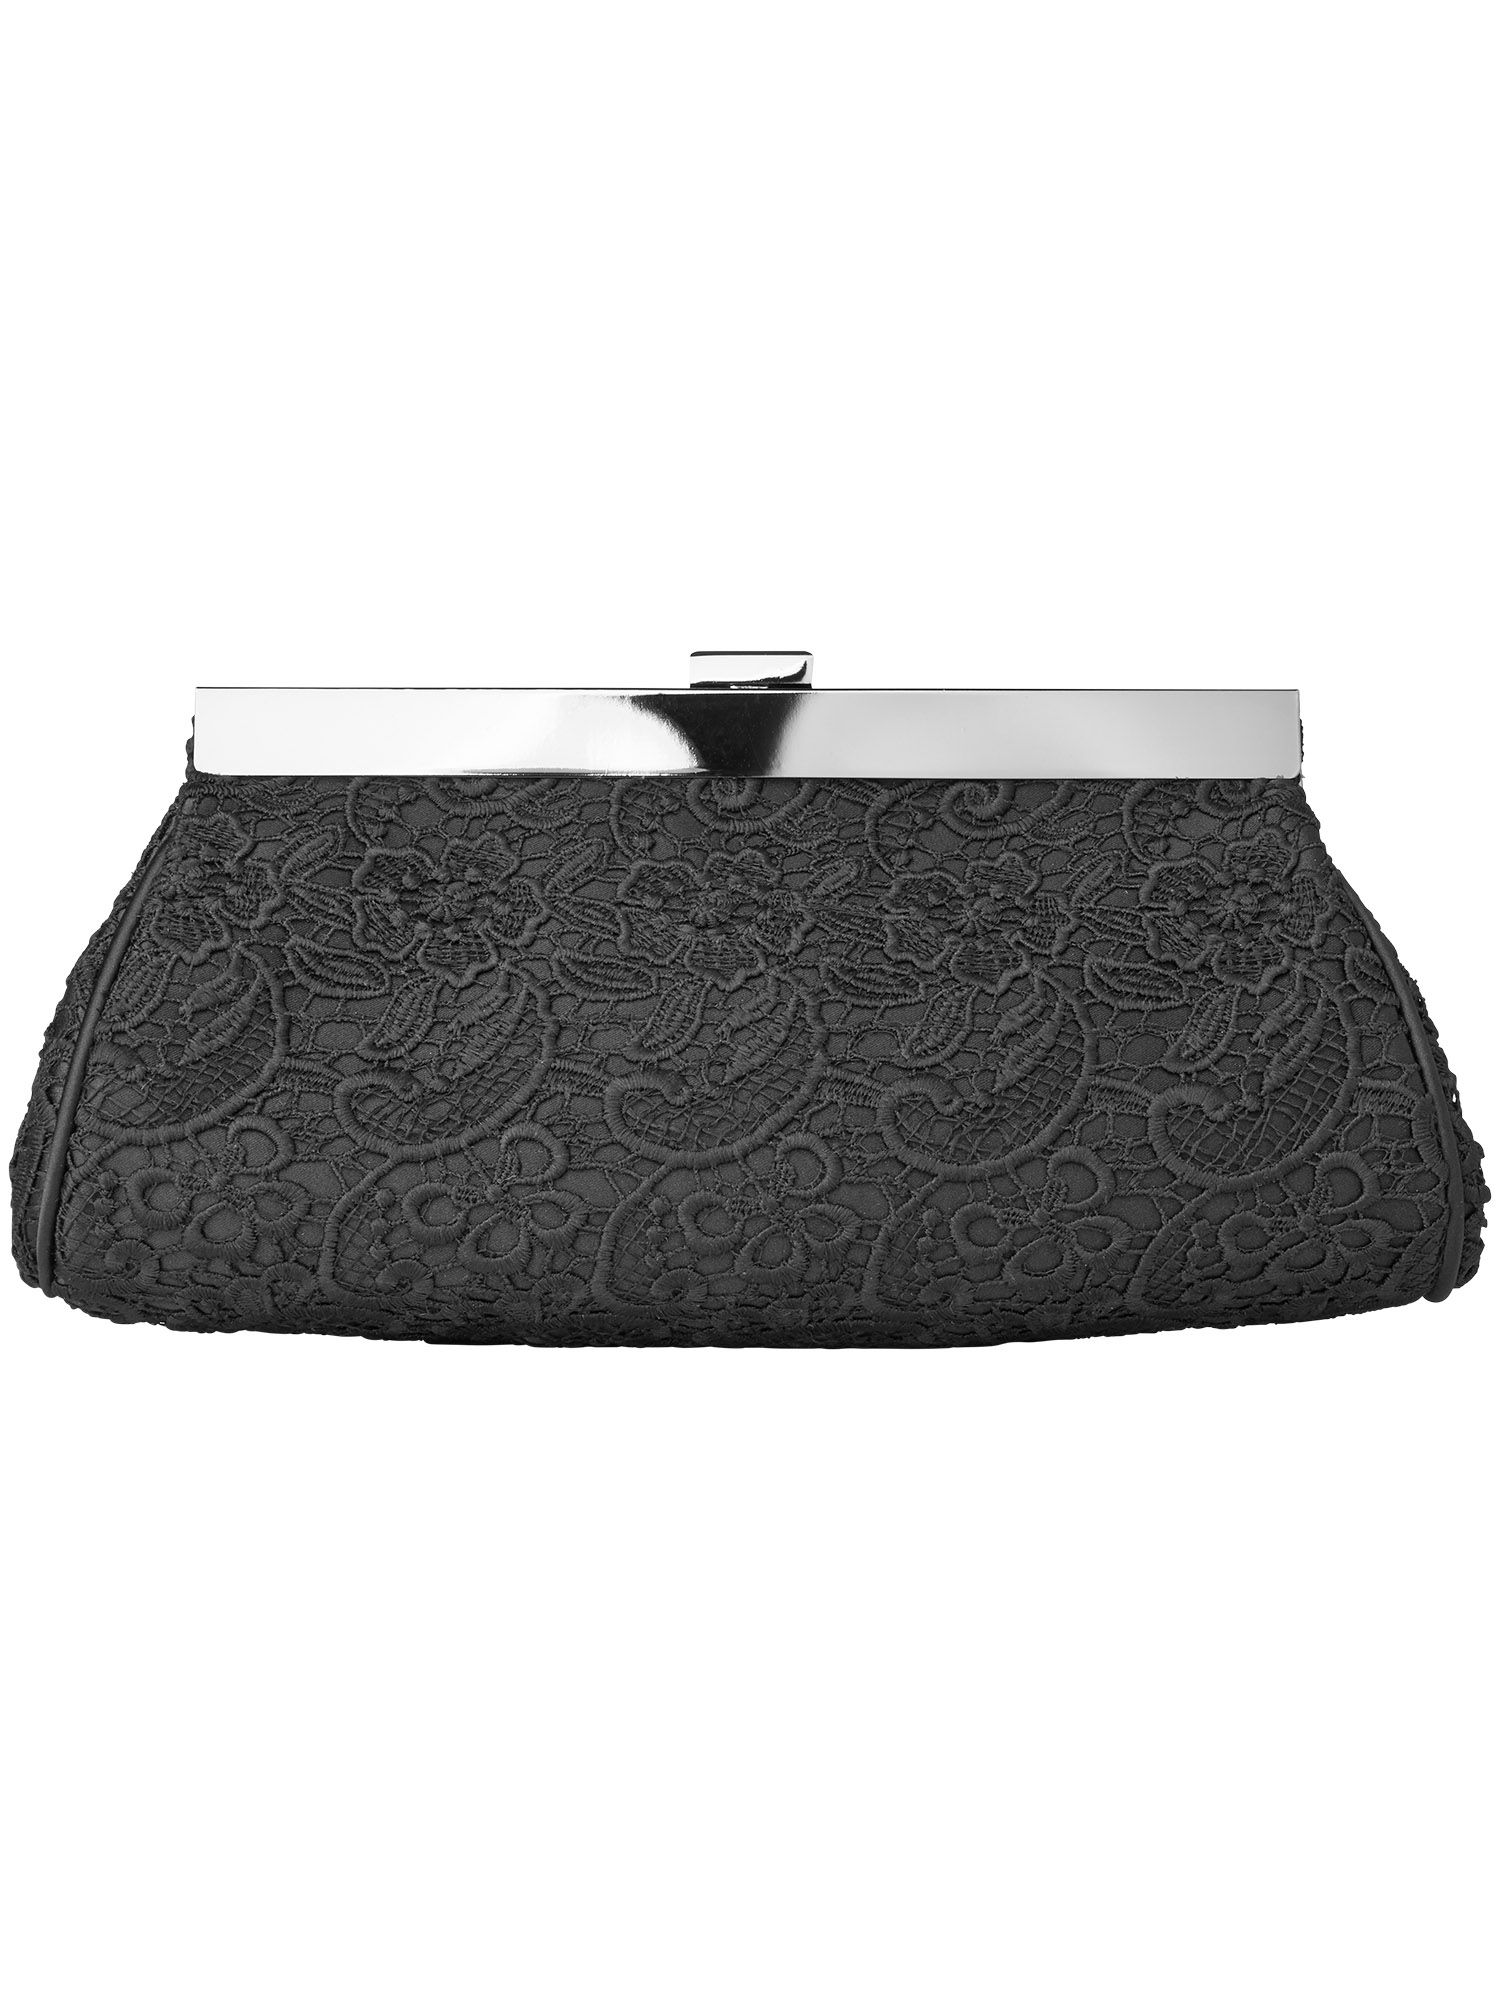 Ruby lace bag